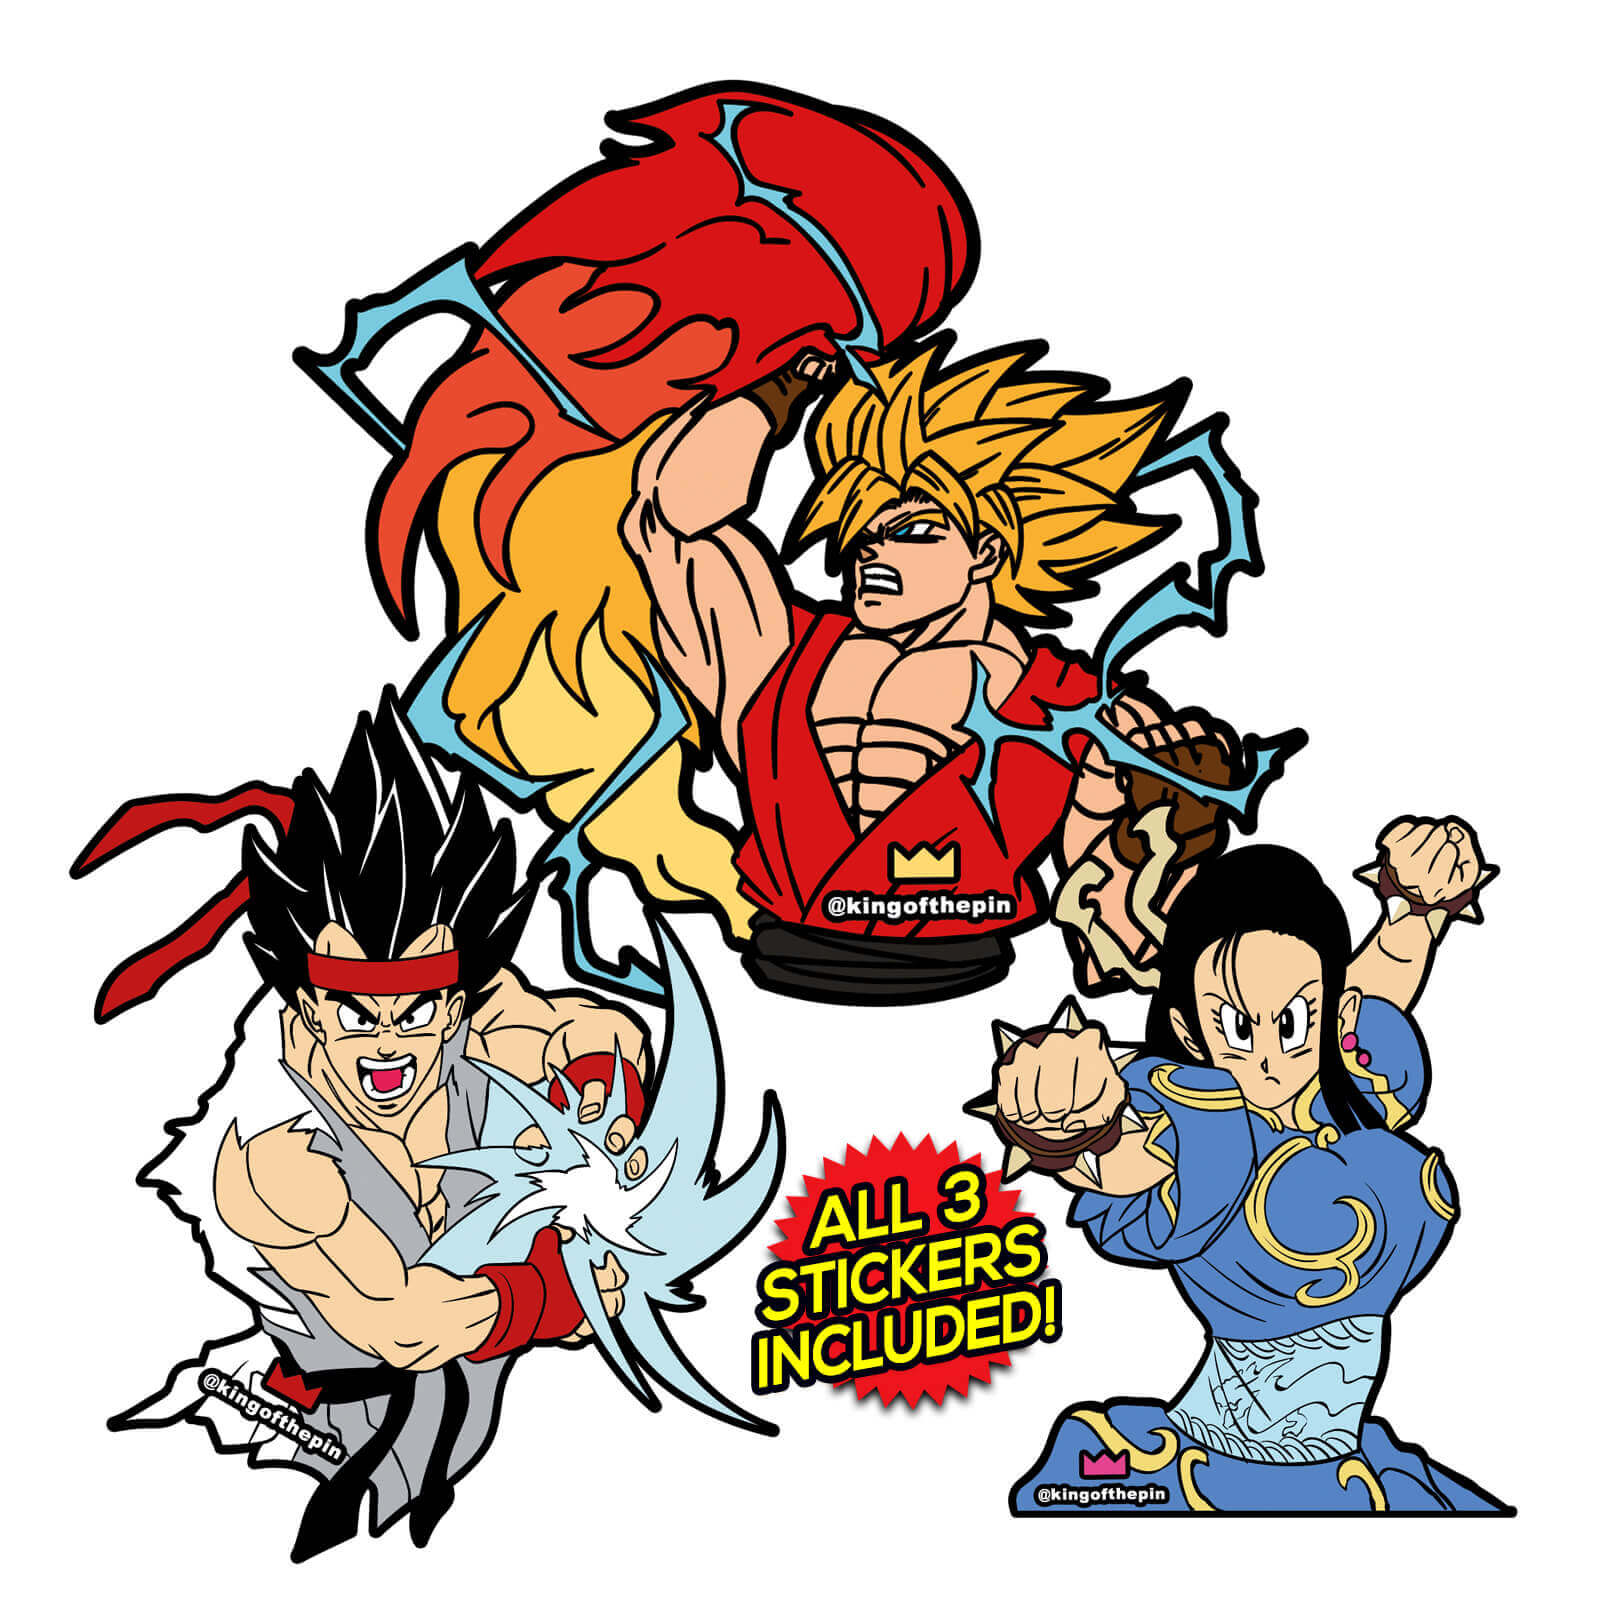 Street fighter z sticker pack includes all 3 stickers kingofthepin